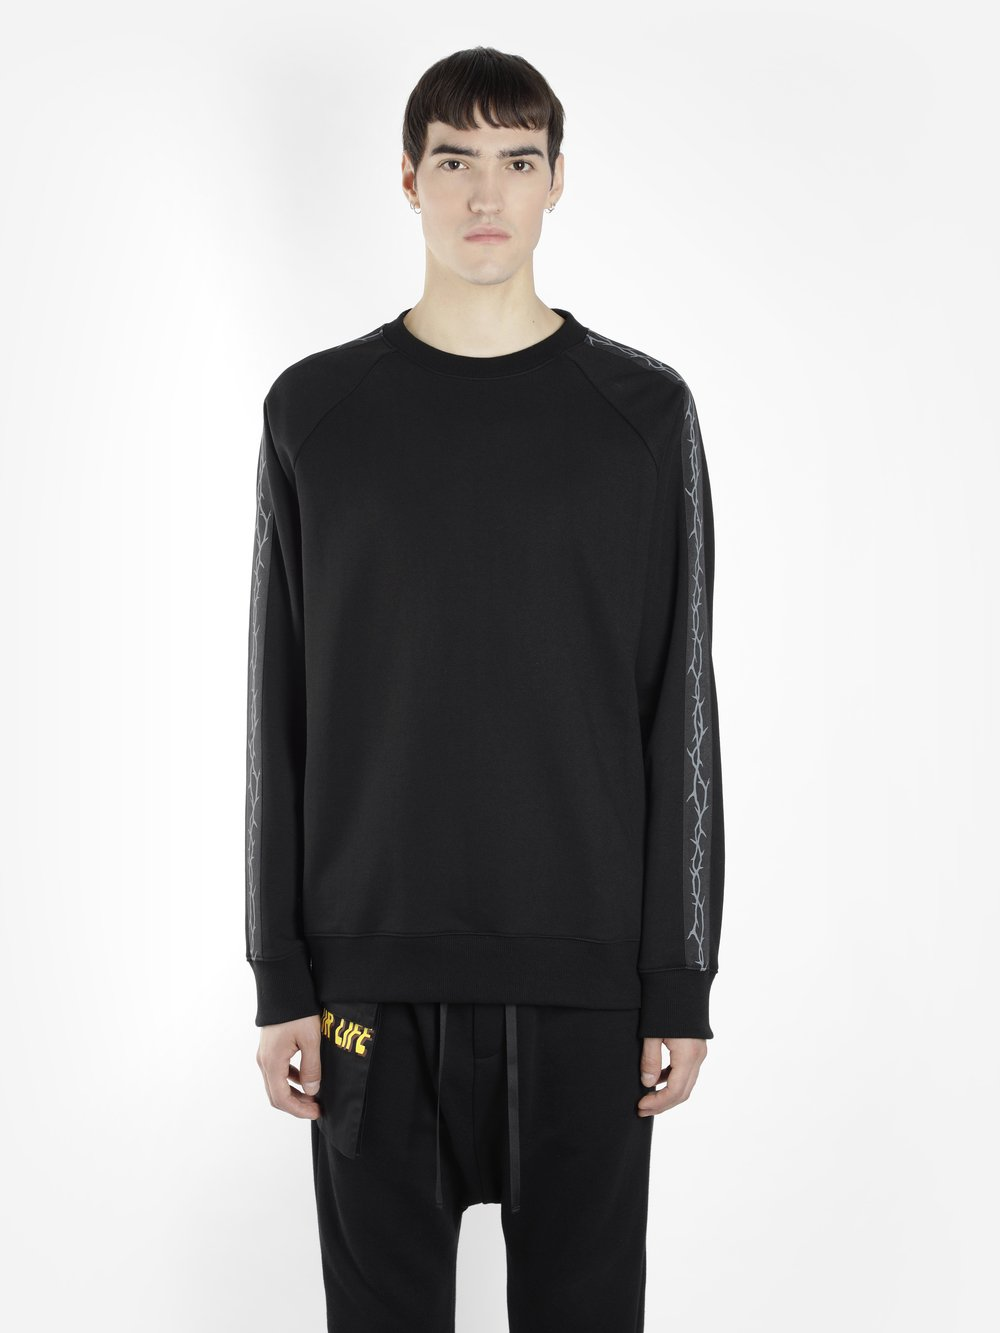 D BY D MEN'S BLACK CREWNECK SWEATER WITH SLEEVES THORN PRINTS